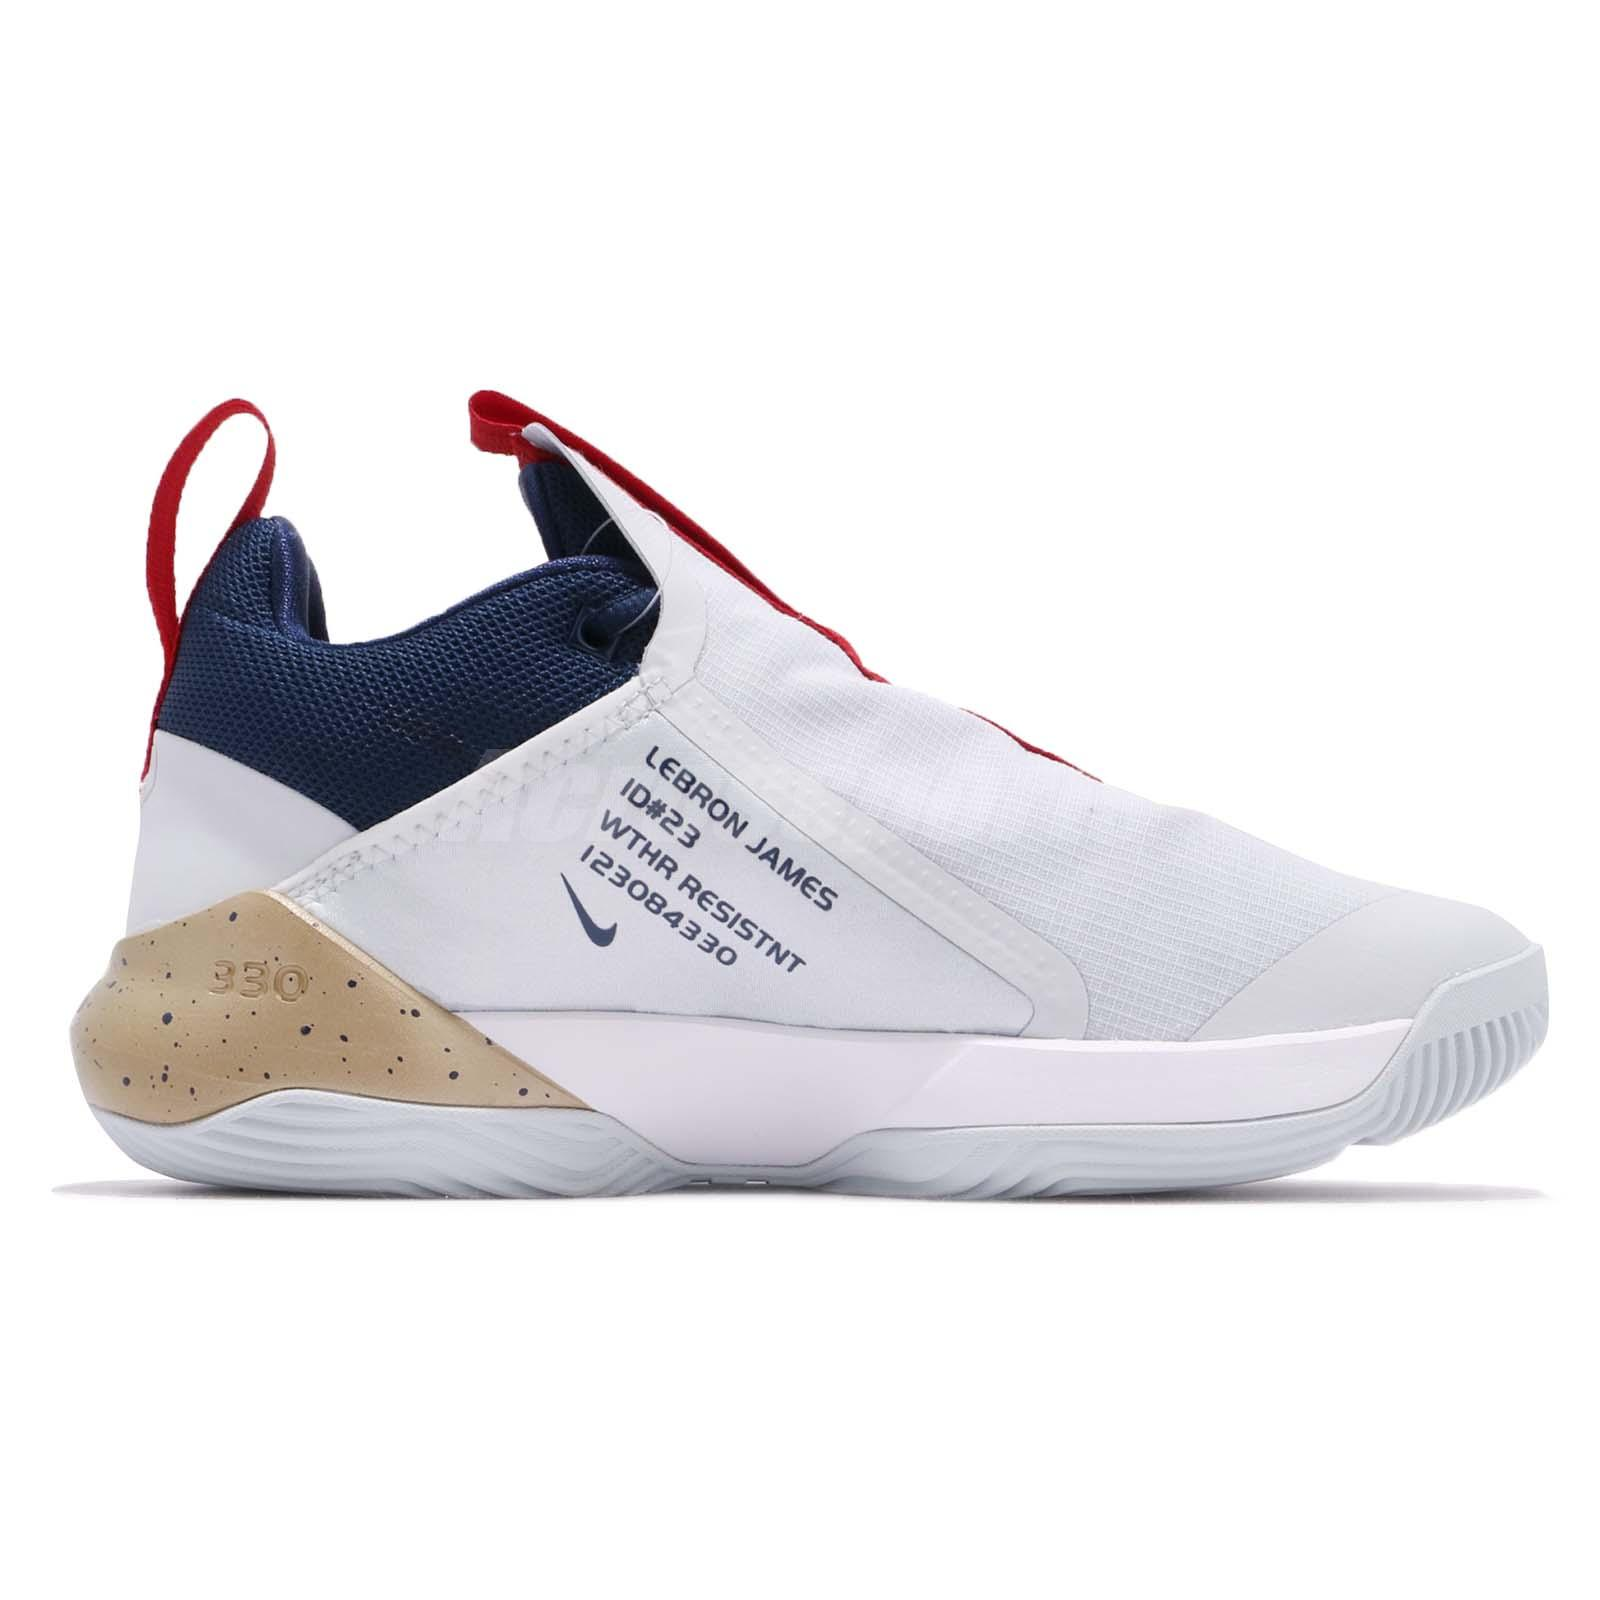 c9bc6eecfbf0 Nike Ambassador XI 11 Lebron James LBJ White Red Gold Navy Men Shoes ...